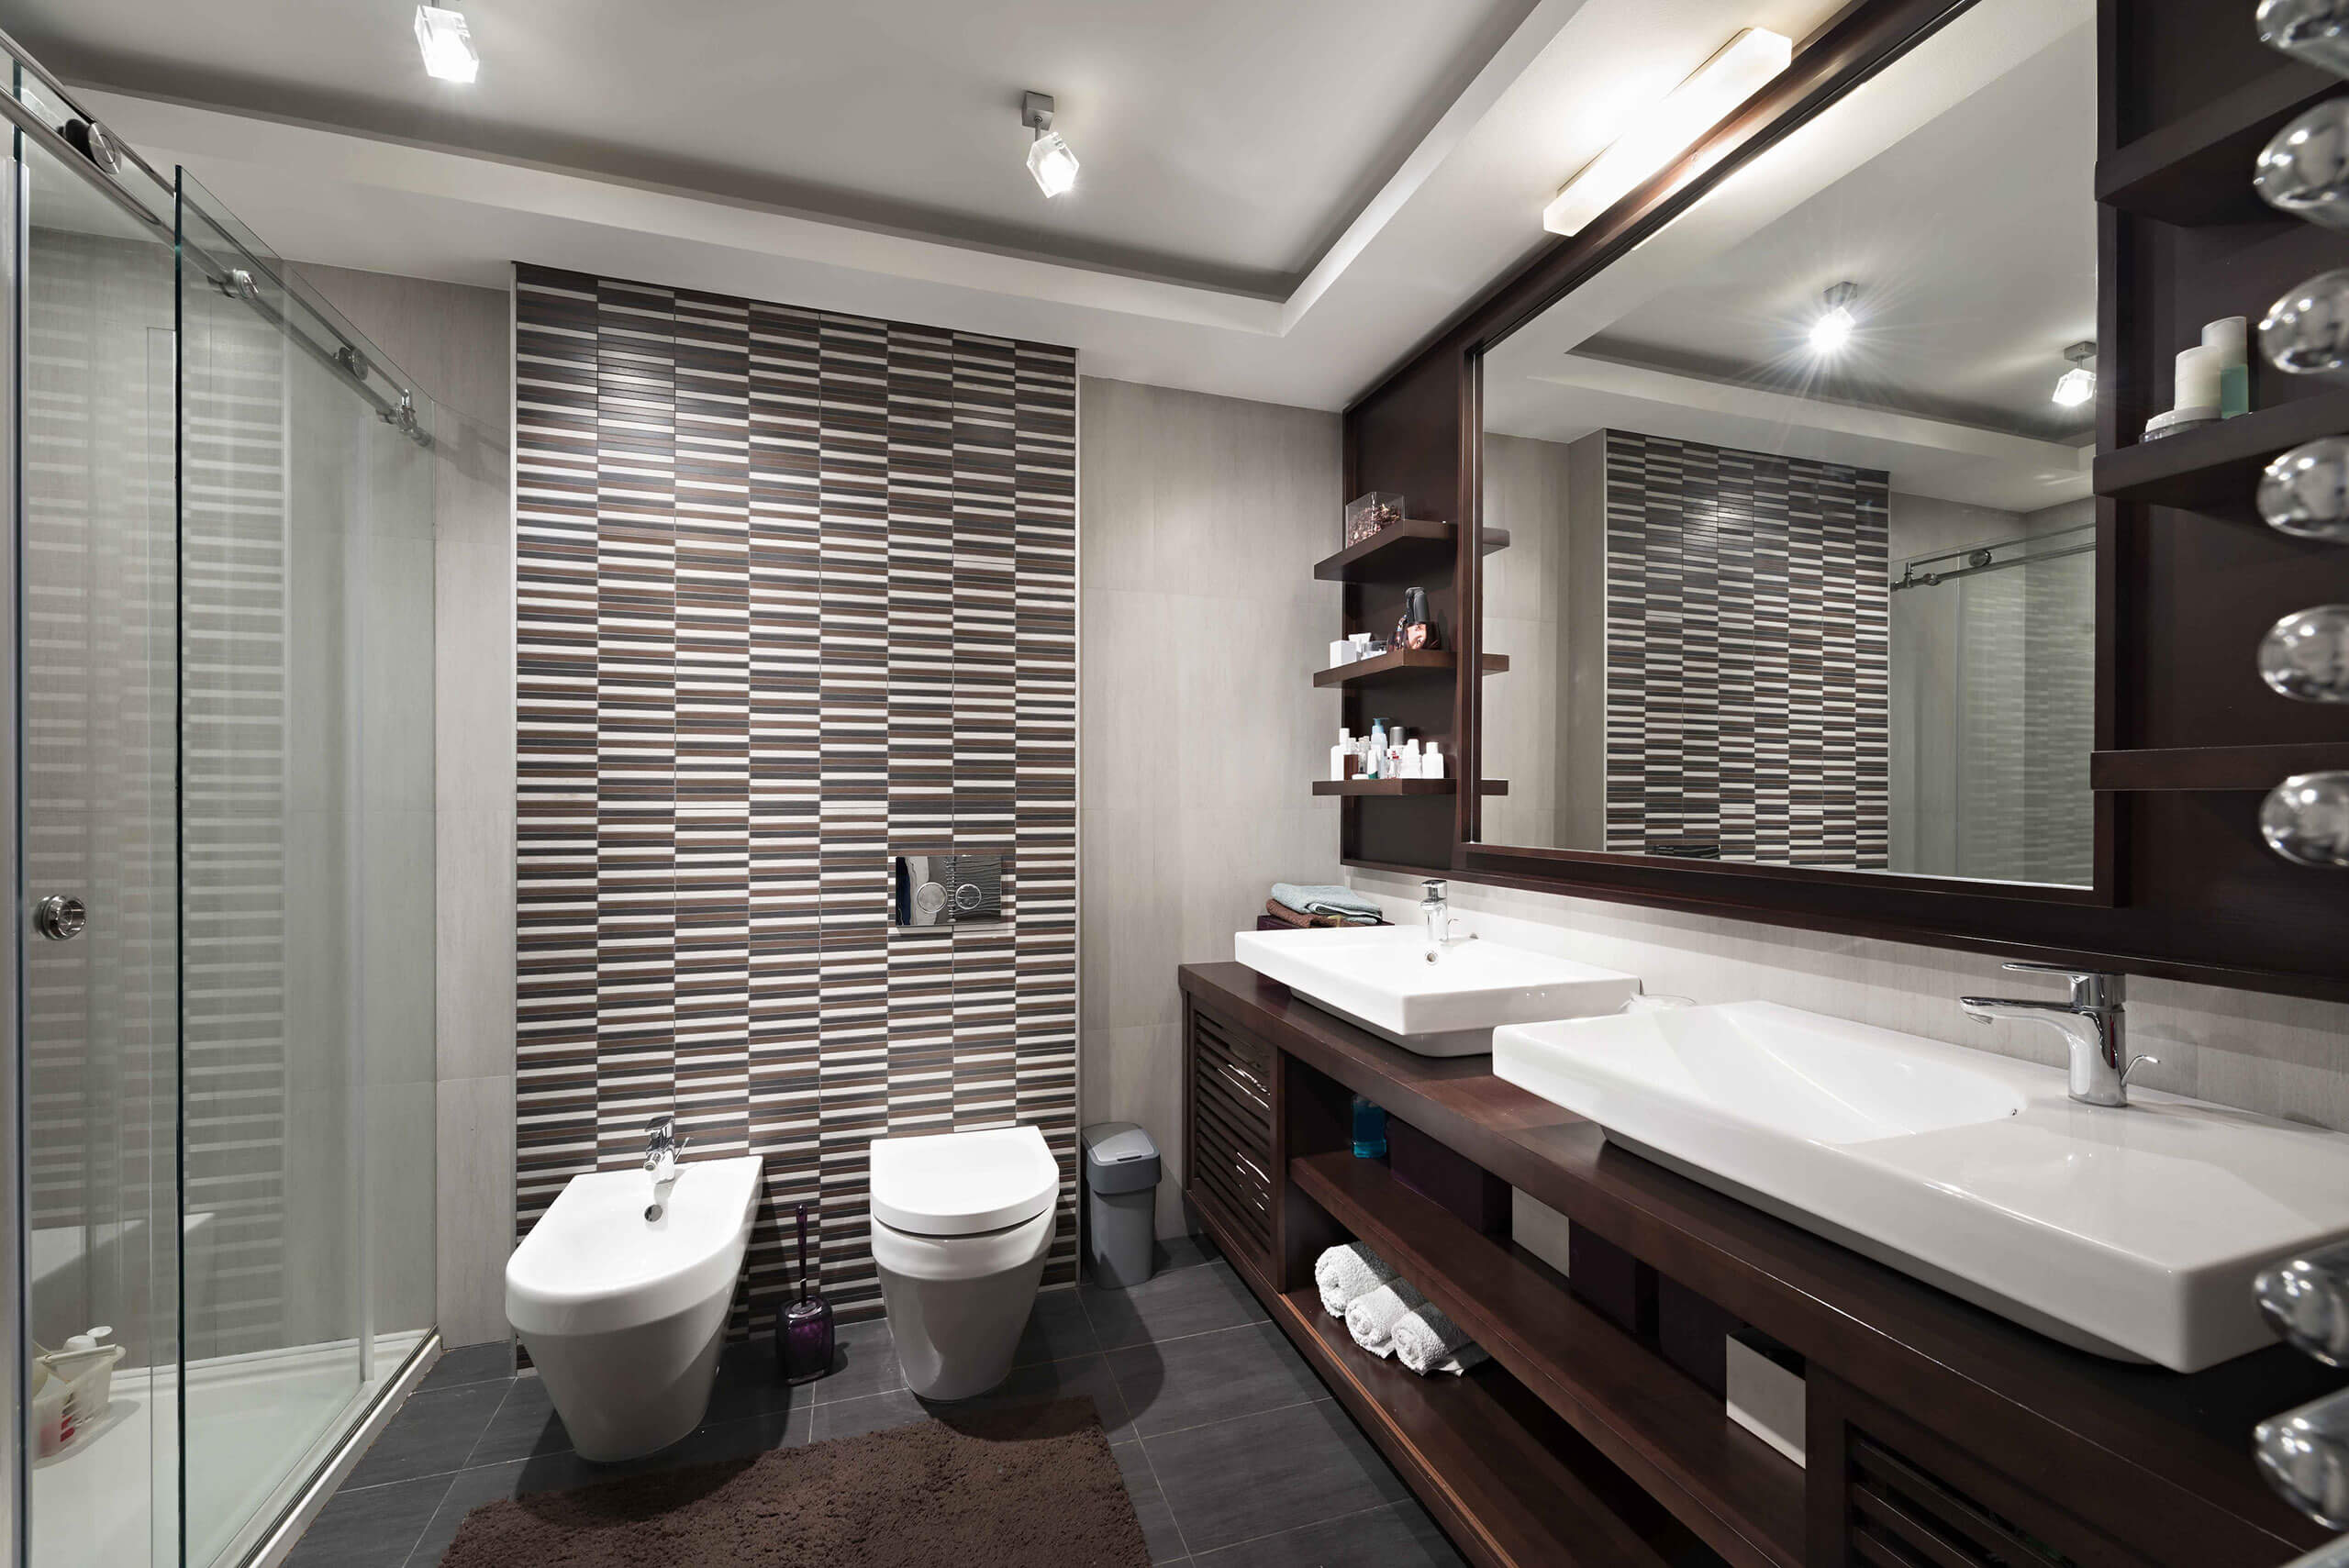 Los angeles bathroom remodeling contractor call for a free for Los angeles bathroom remodeling contractor